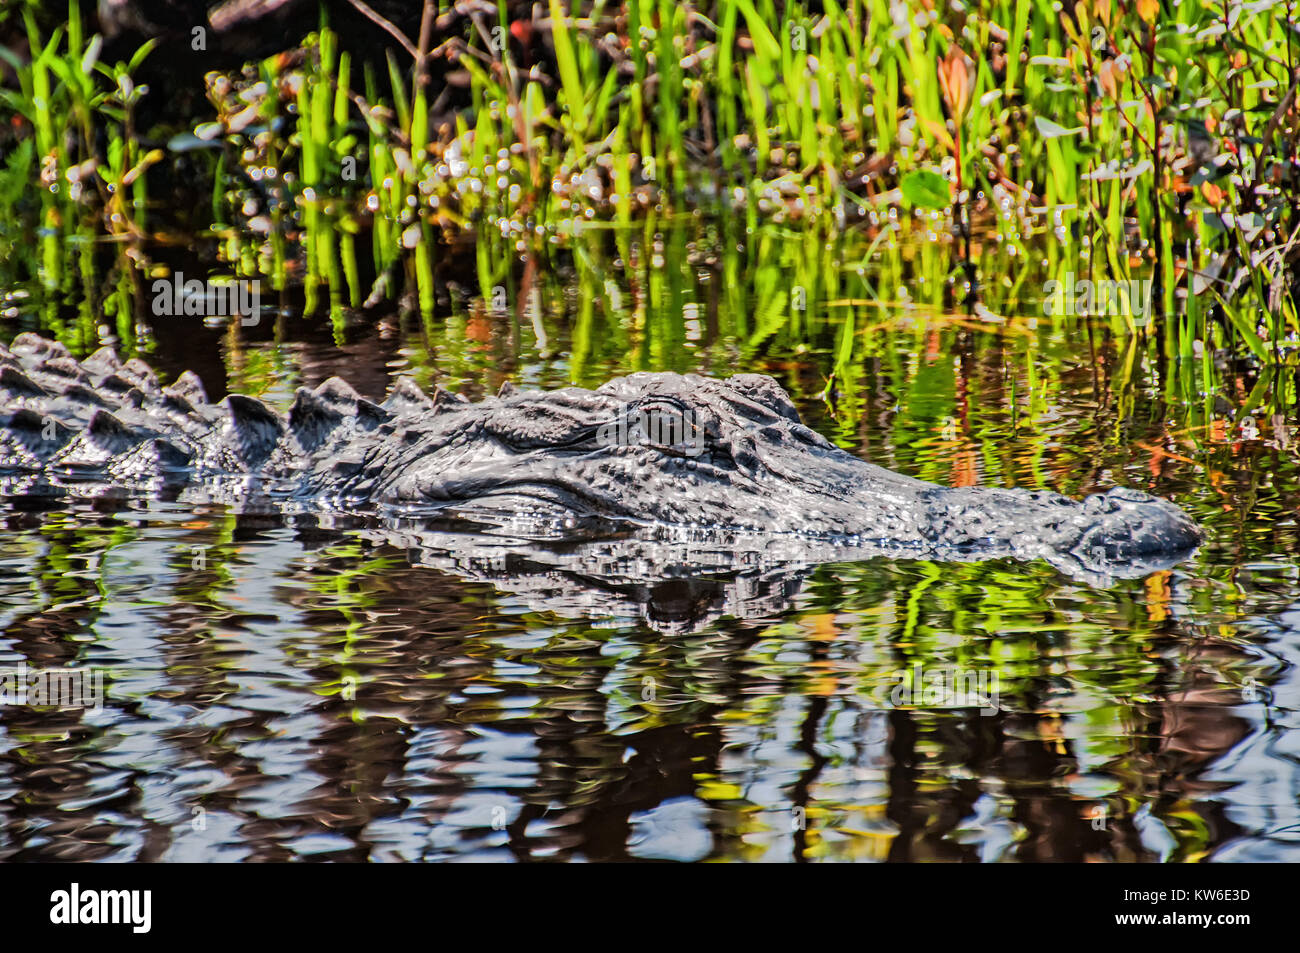 close-up of an alligator - Stock Image